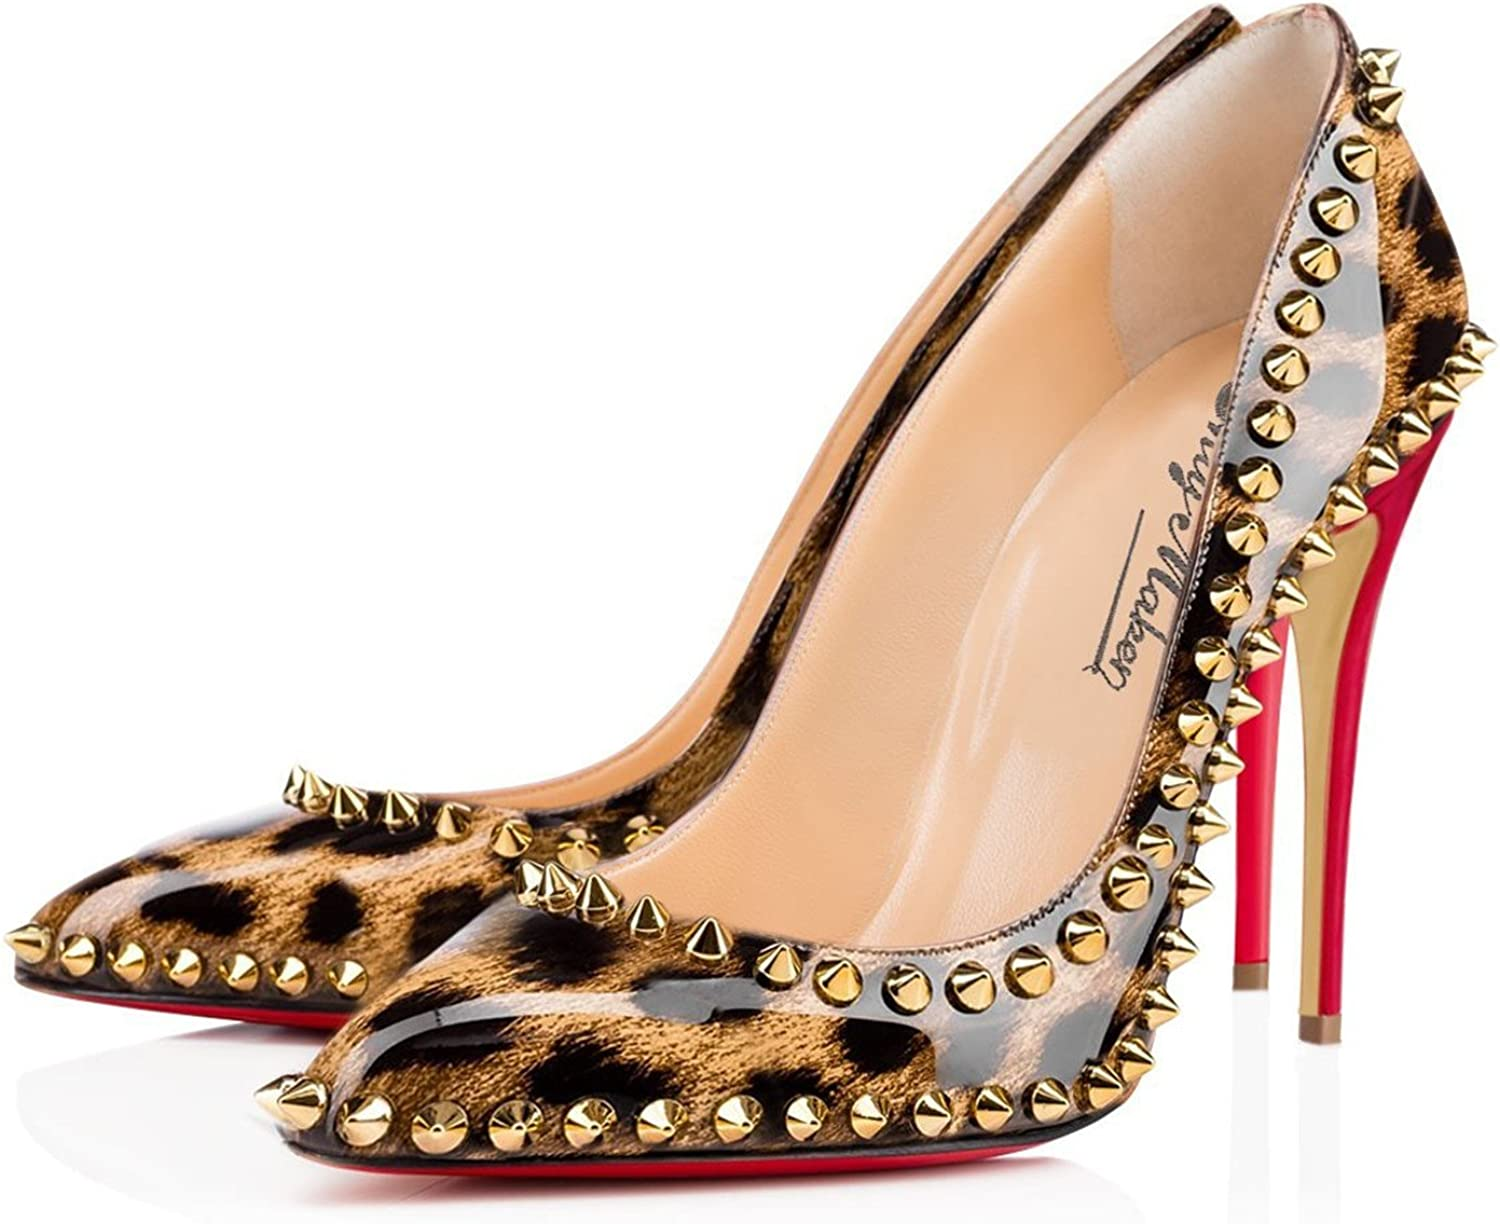 Laolaooo shoes Women's Pointed Toe High Heel with gold Rivet Decoration Leopard Print Dress Pumps